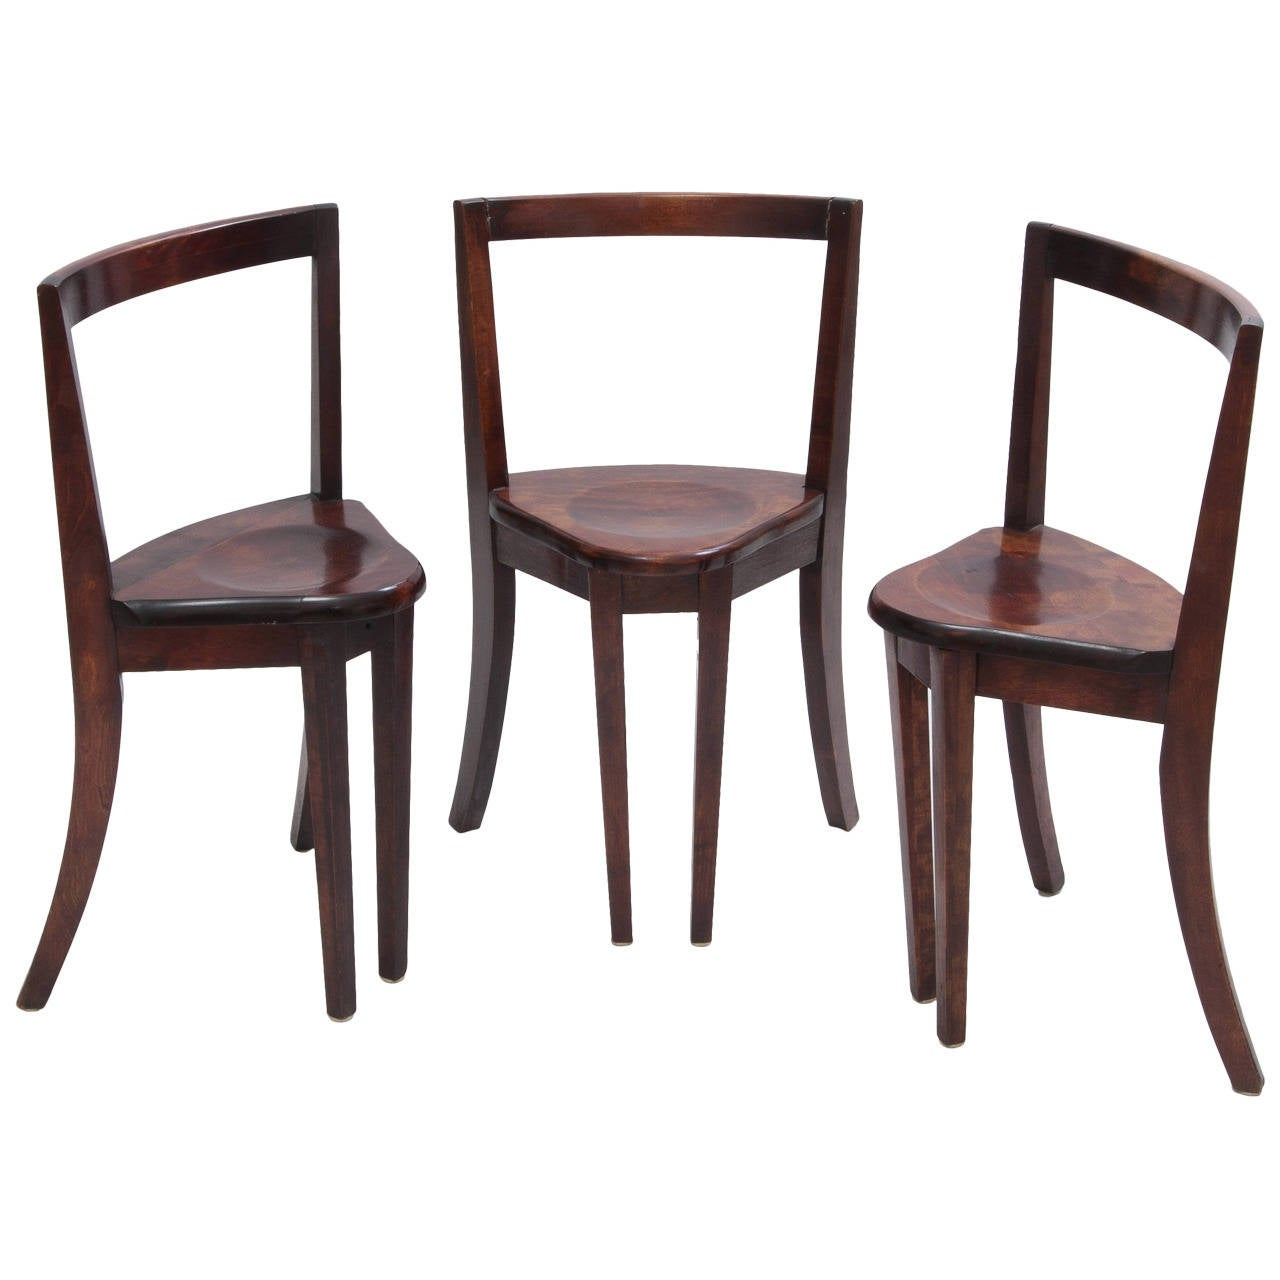 Set Of Three Antique Triangular Shaped Wood Chairs At 1stdibs